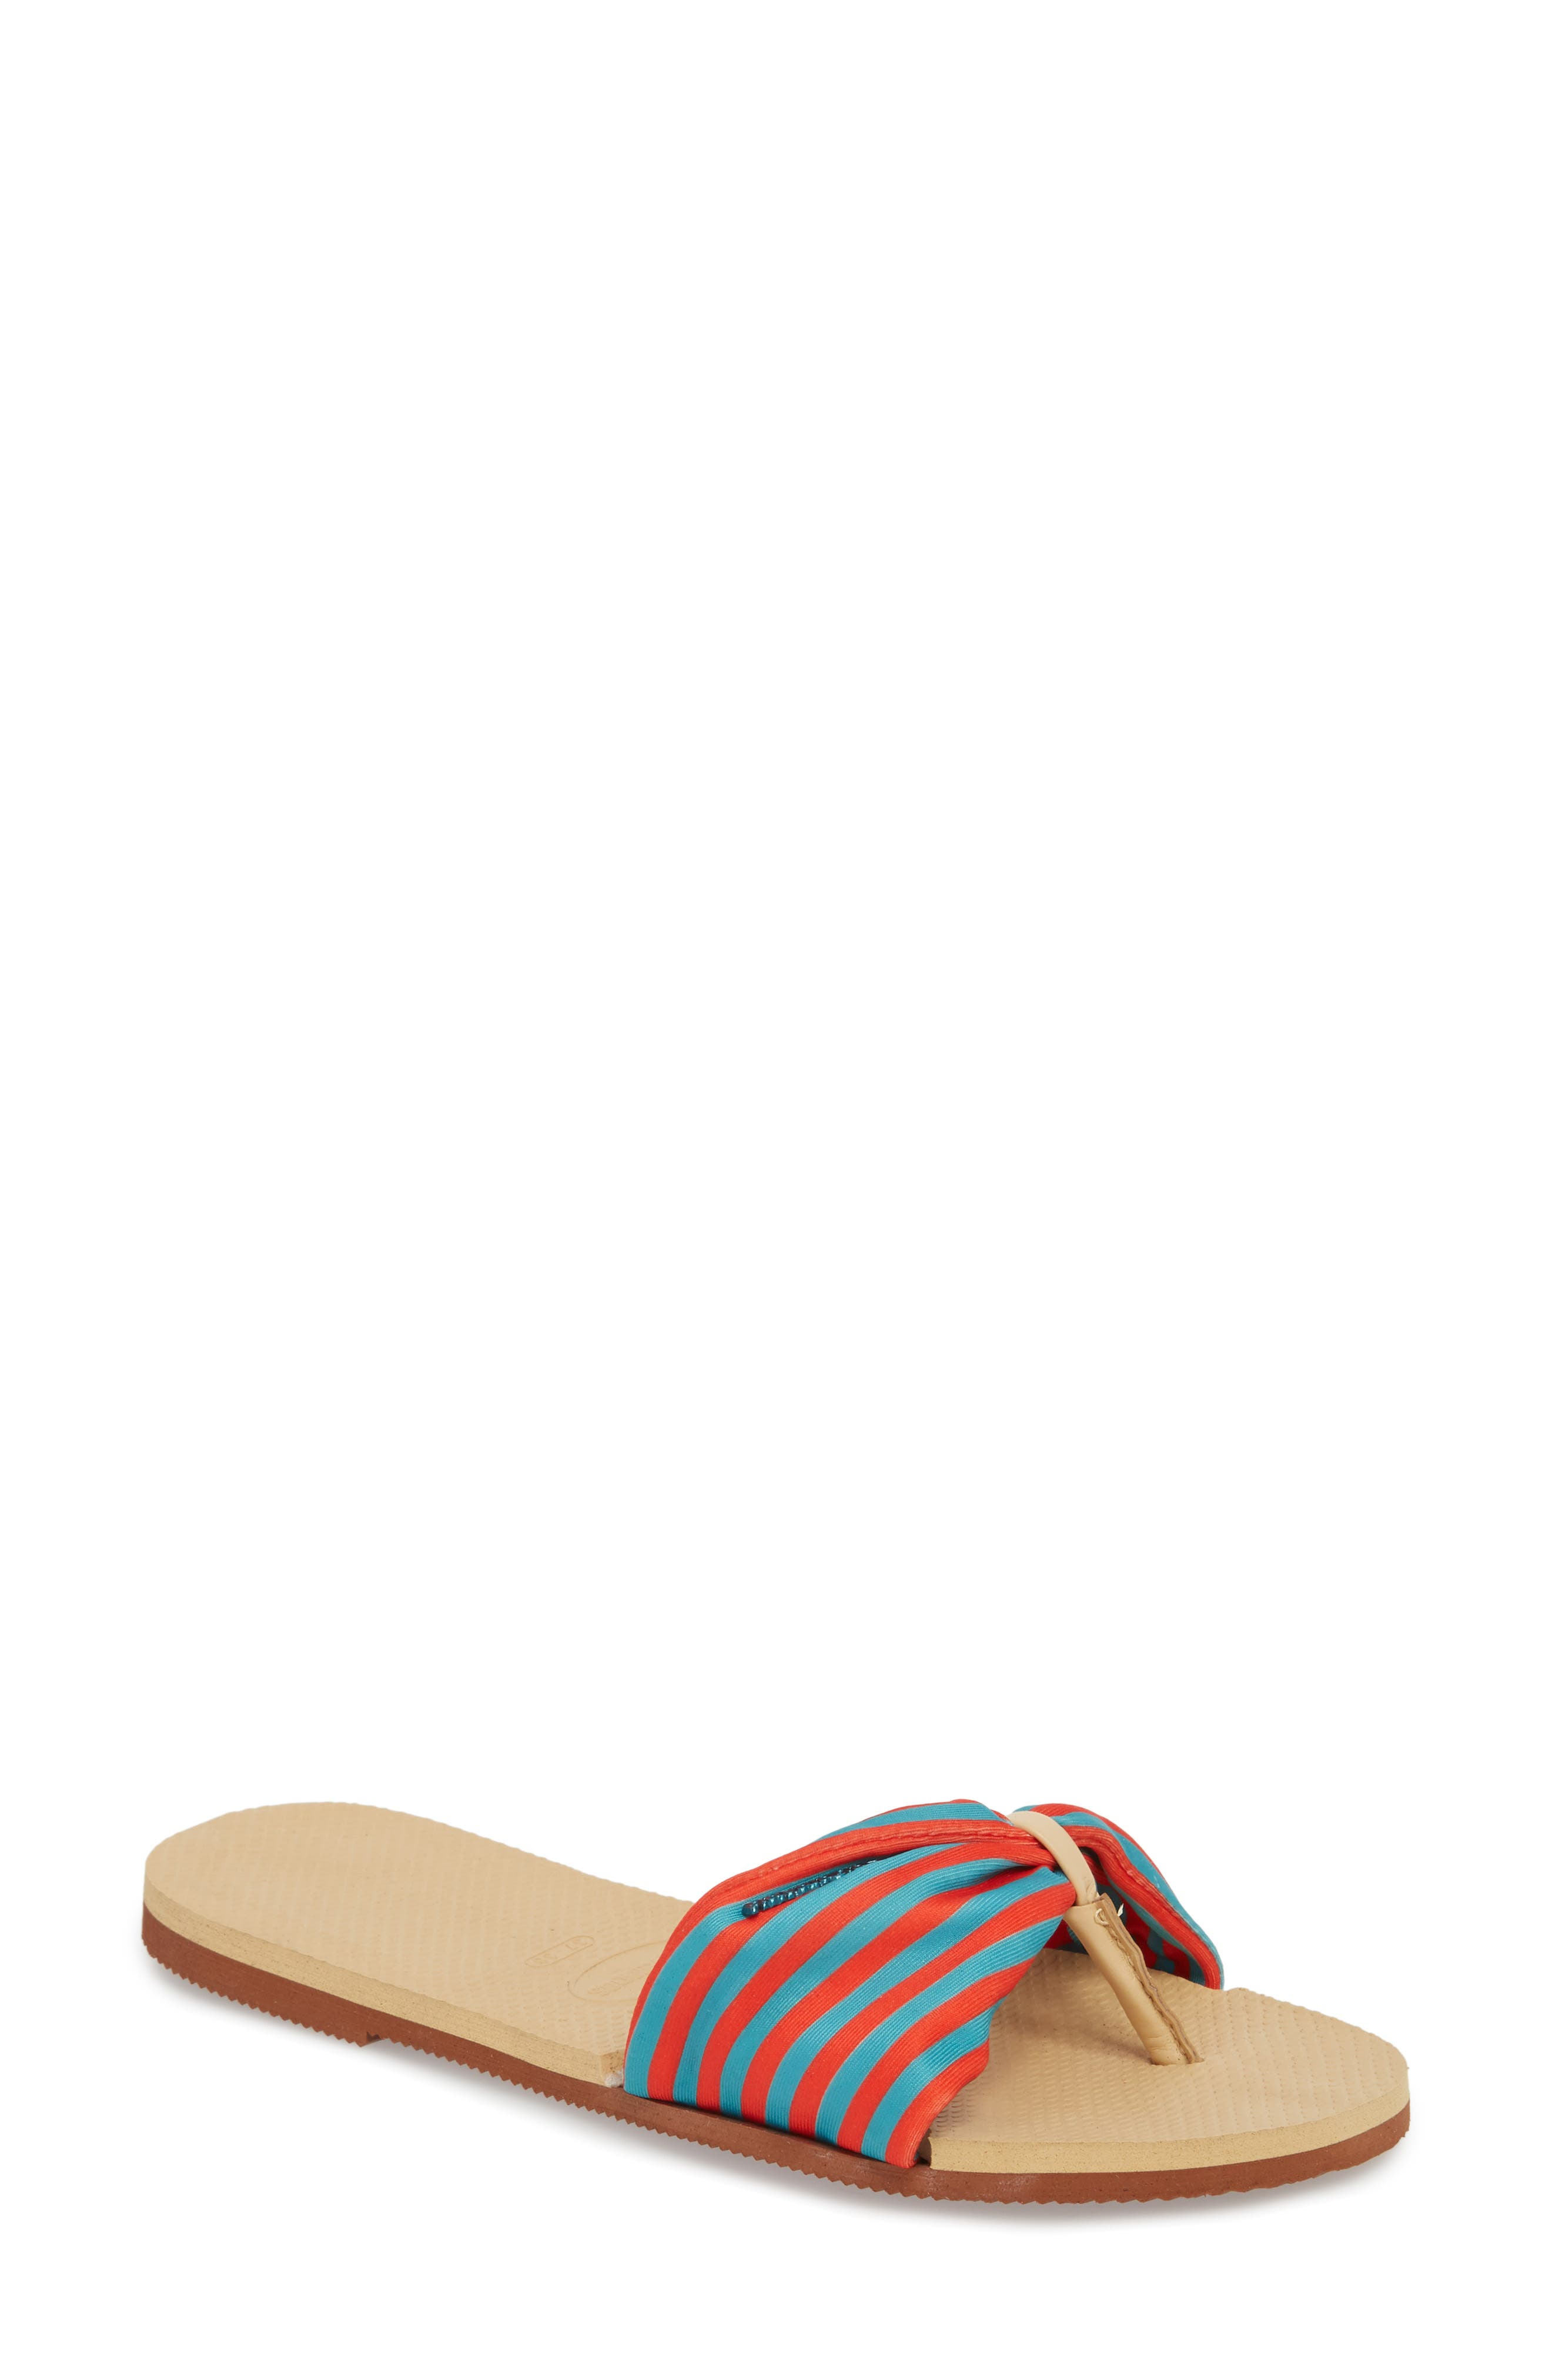 You Saint Tropez Sandal,                         Main,                         color, IVORY